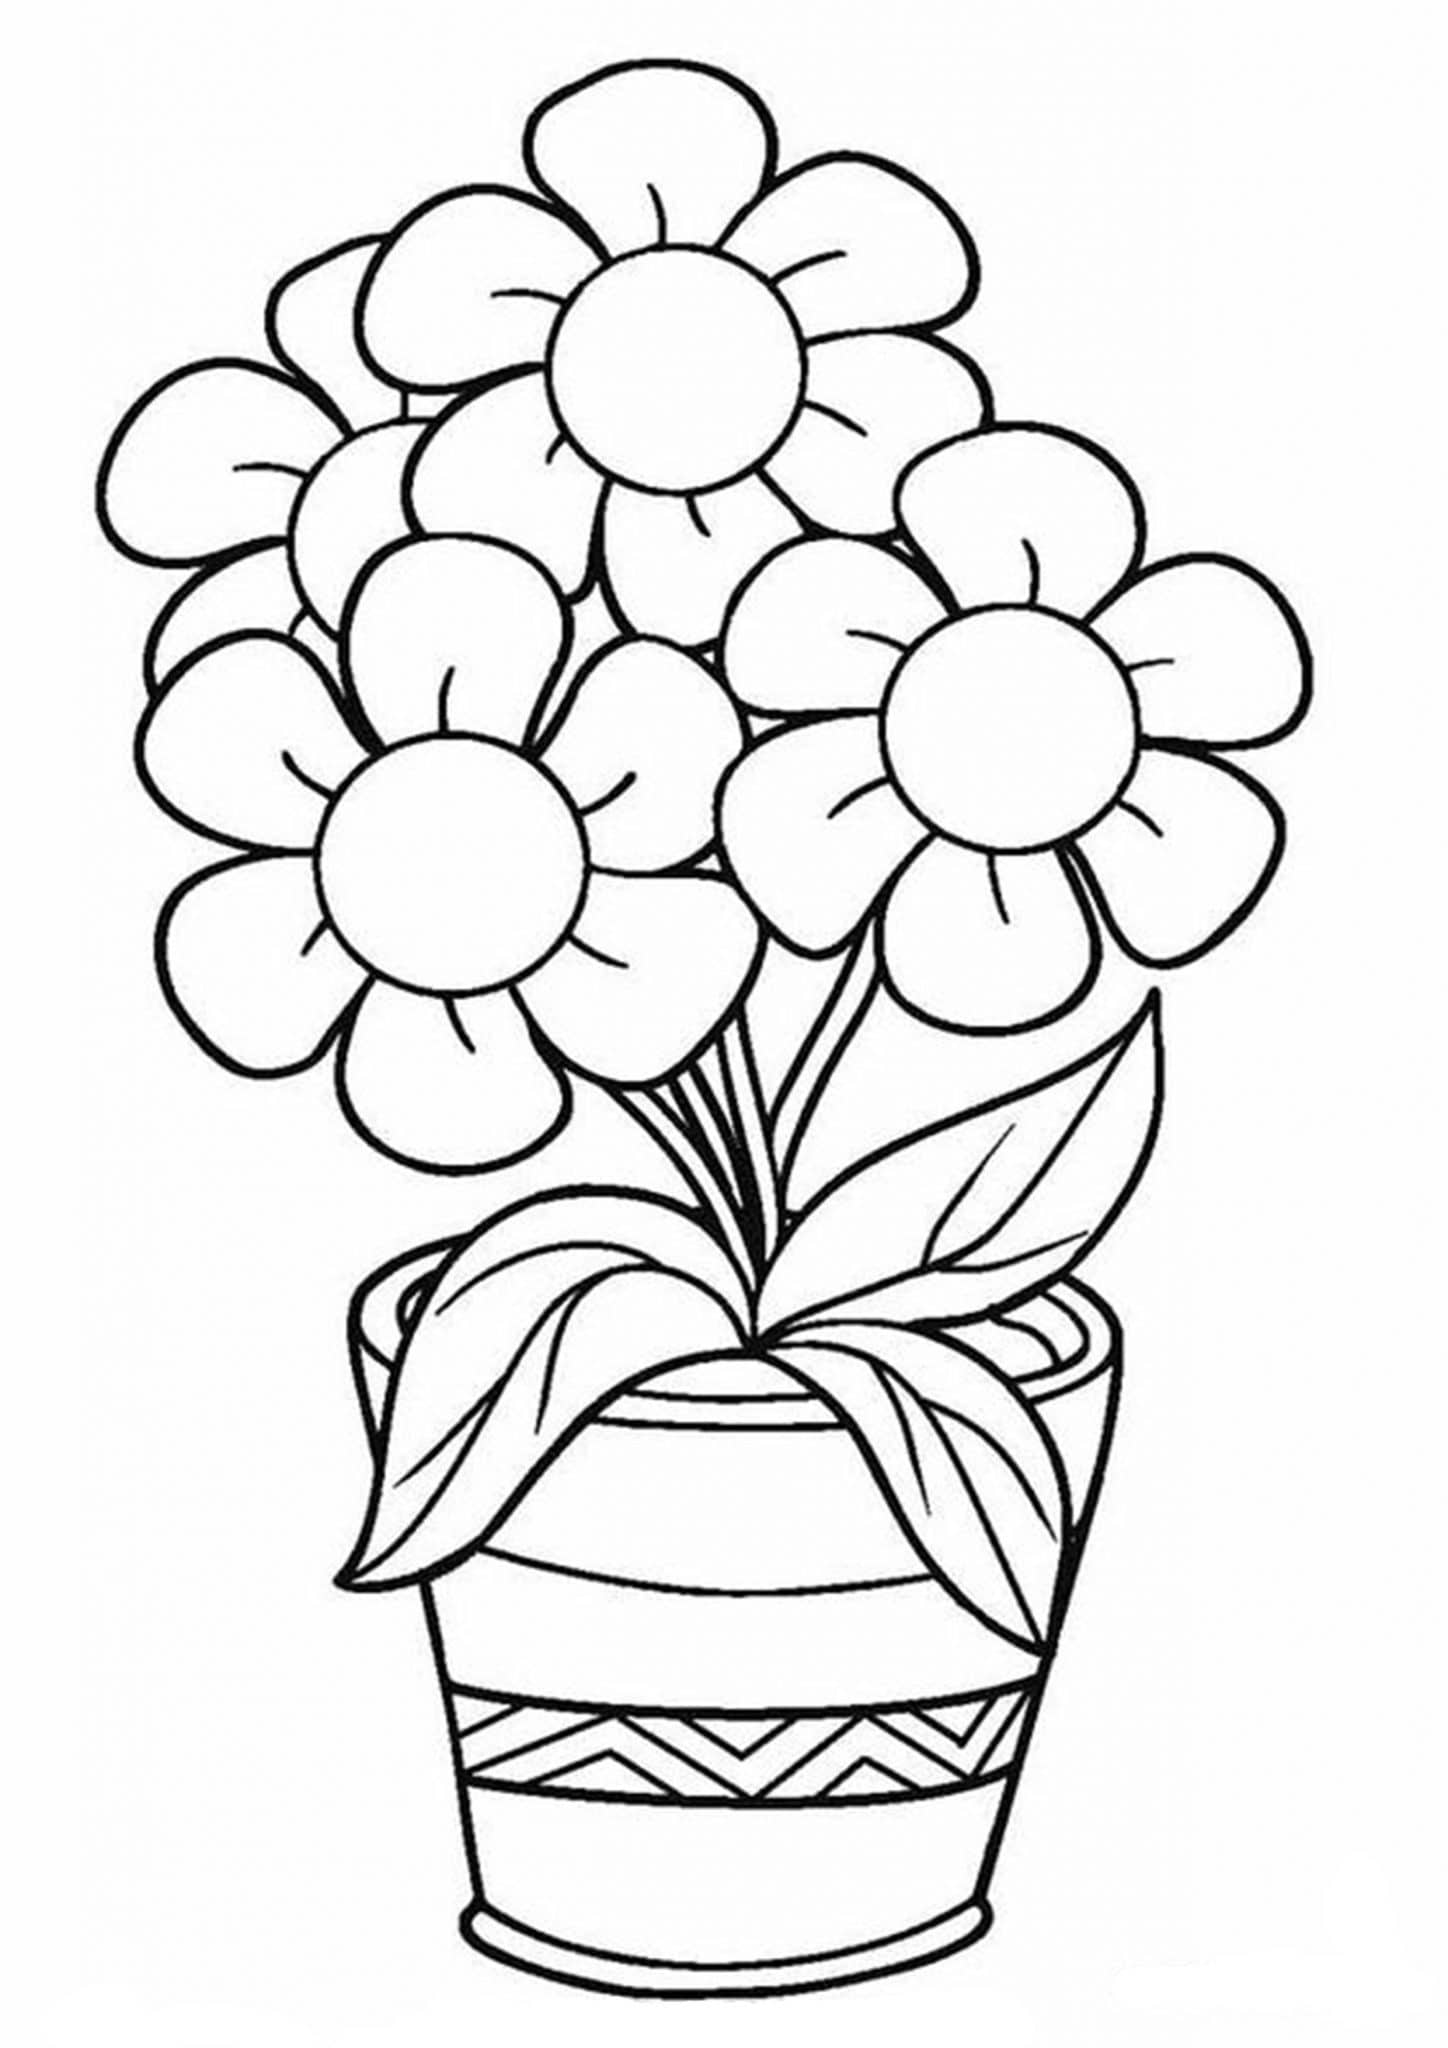 flowers pictures to colour free printable flower coloring pages for kids pictures colour flowers to